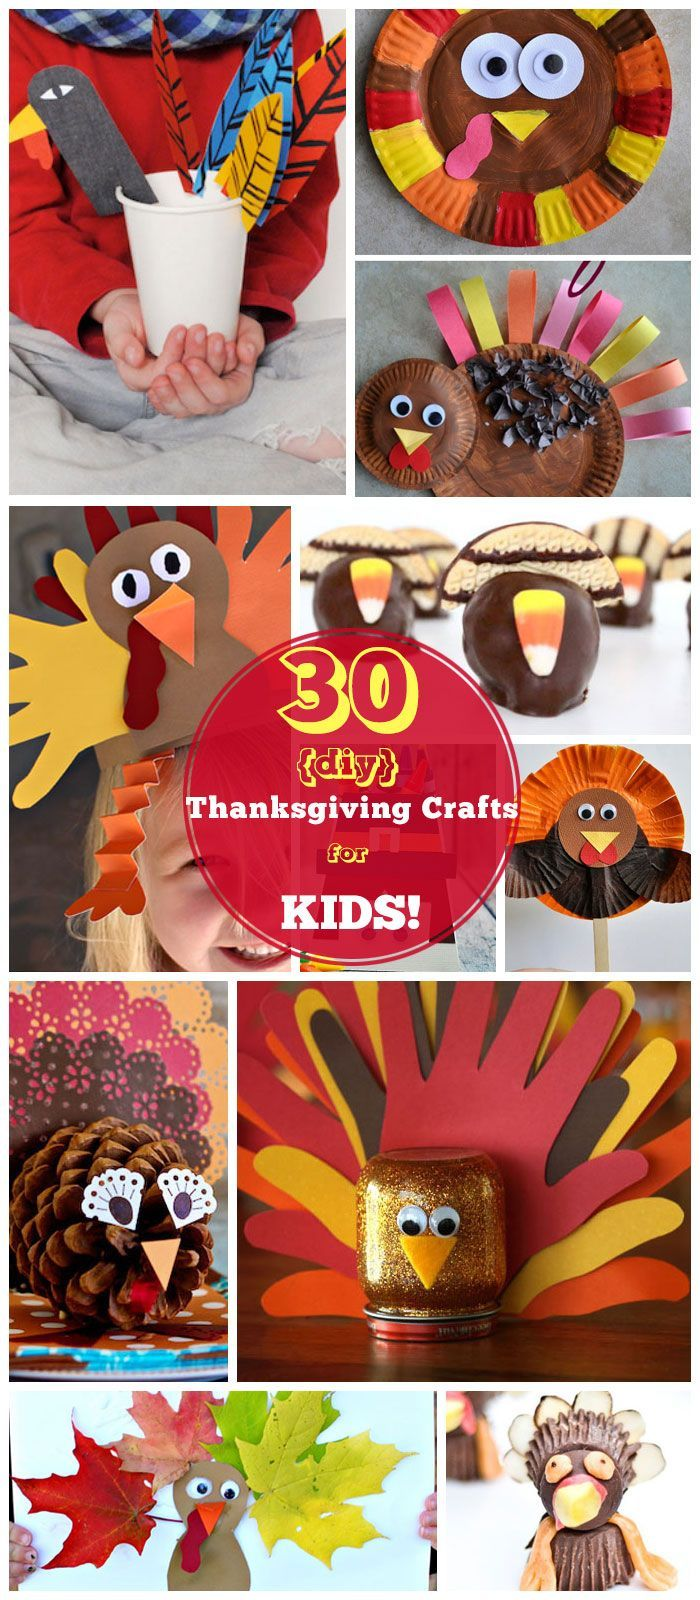 30 DIY Thanksgiving Crafts for Kids to Make